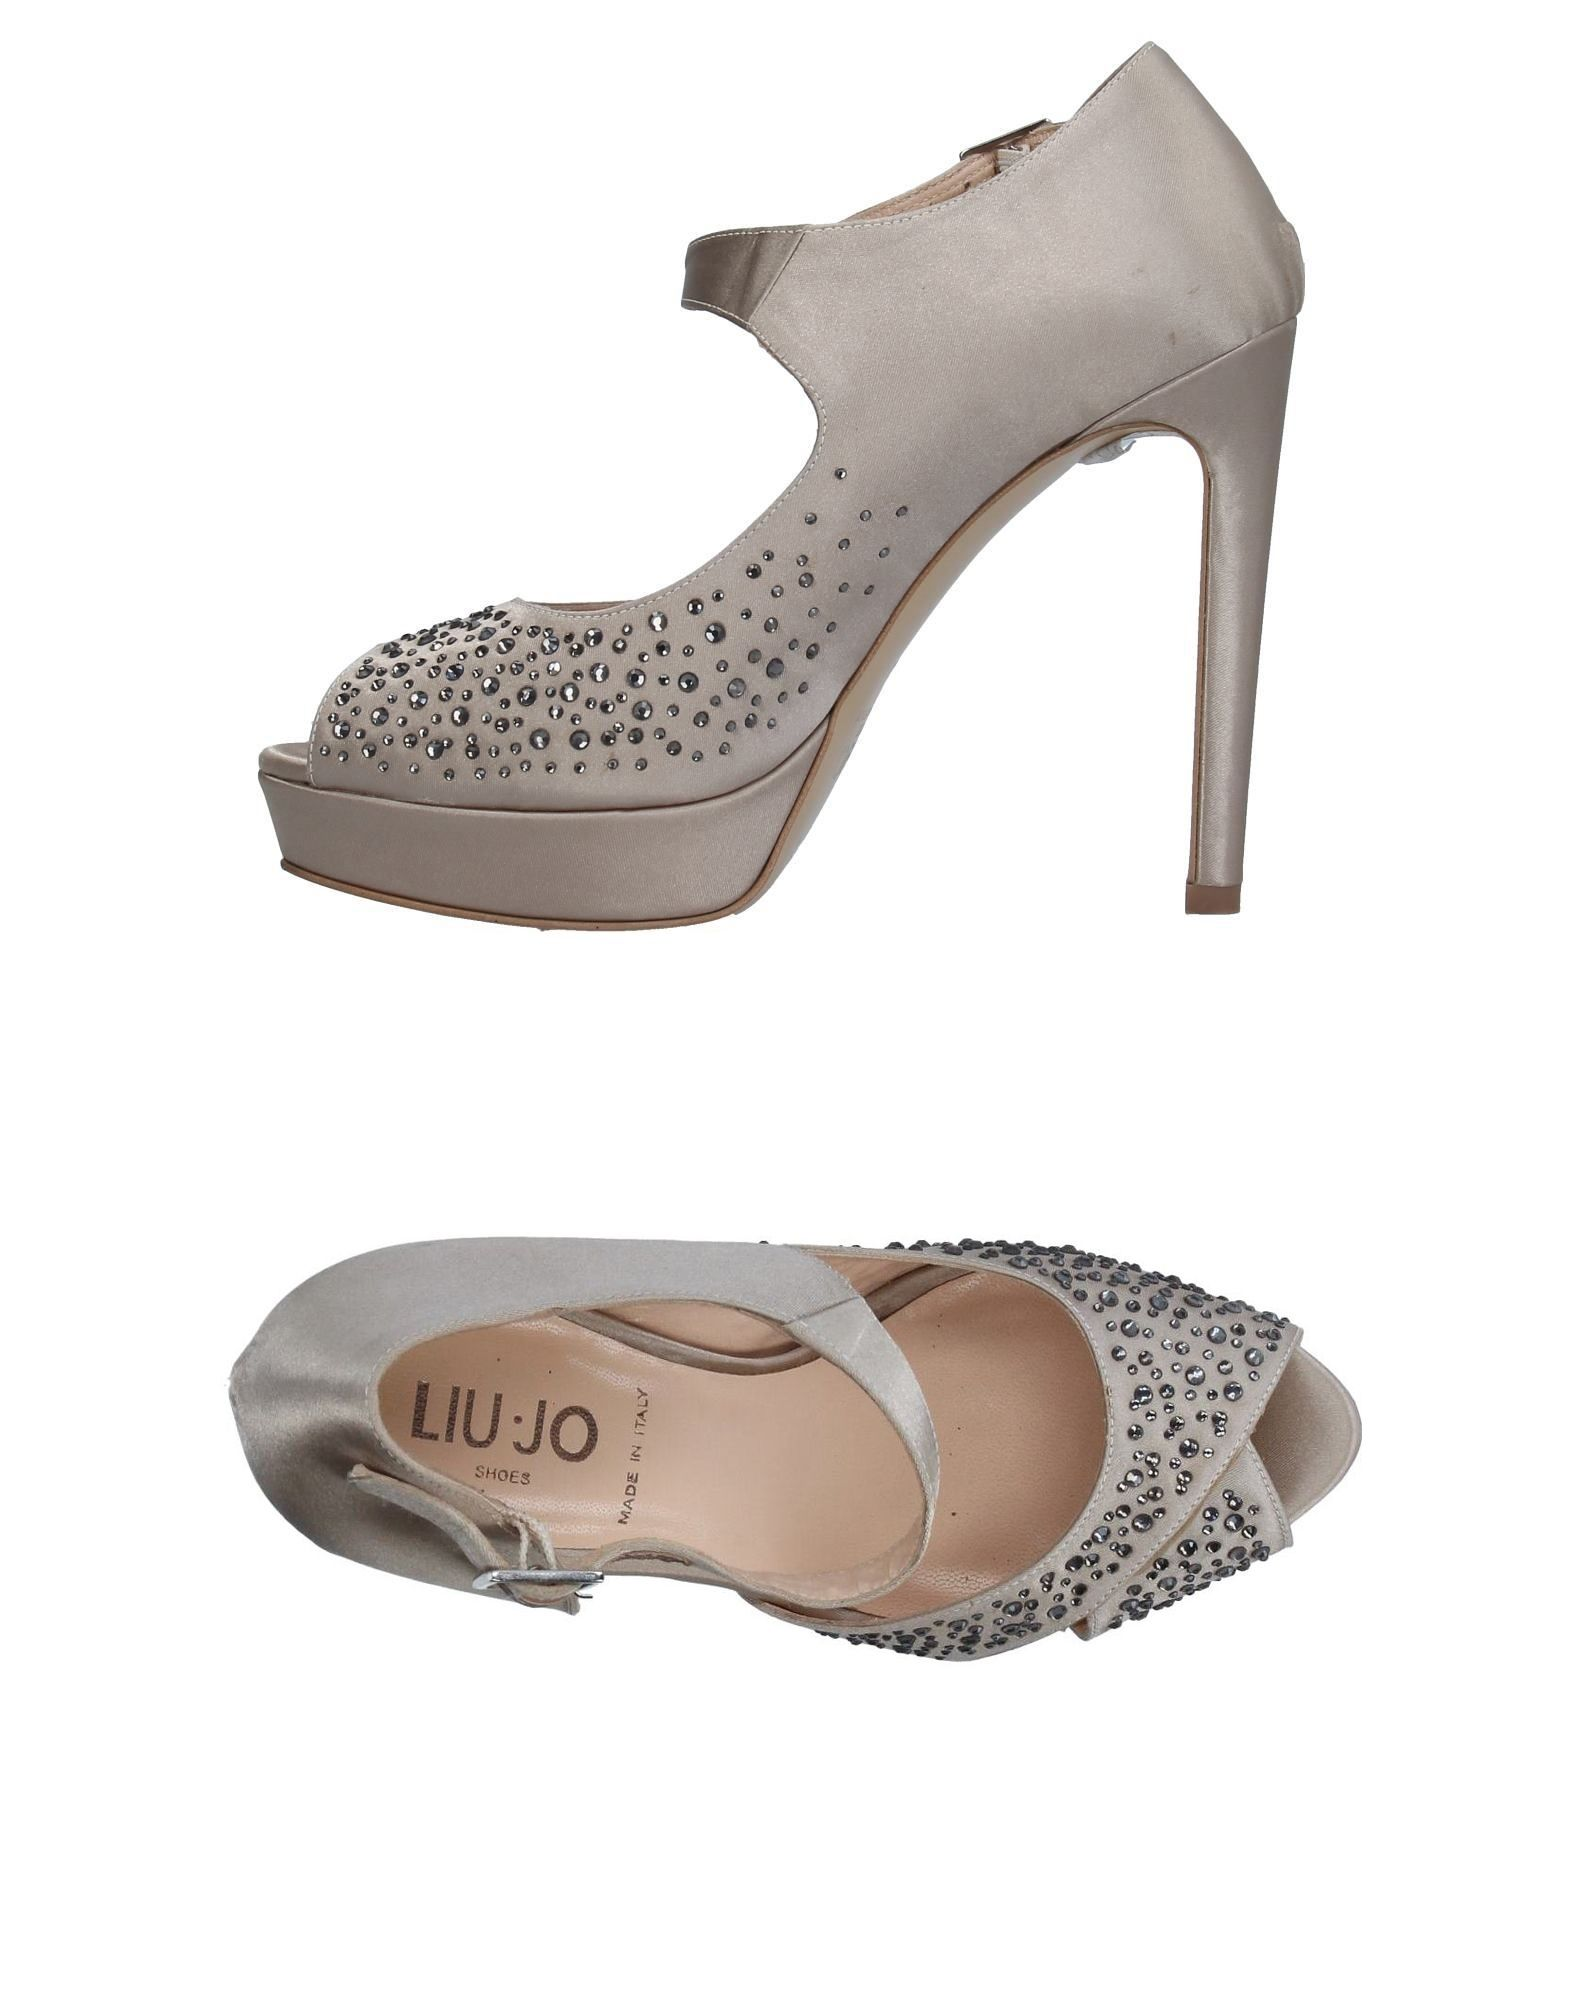 Escarpins Liu •Jo Shoes Femme - Escarpins Liu •Jo Shoes sur